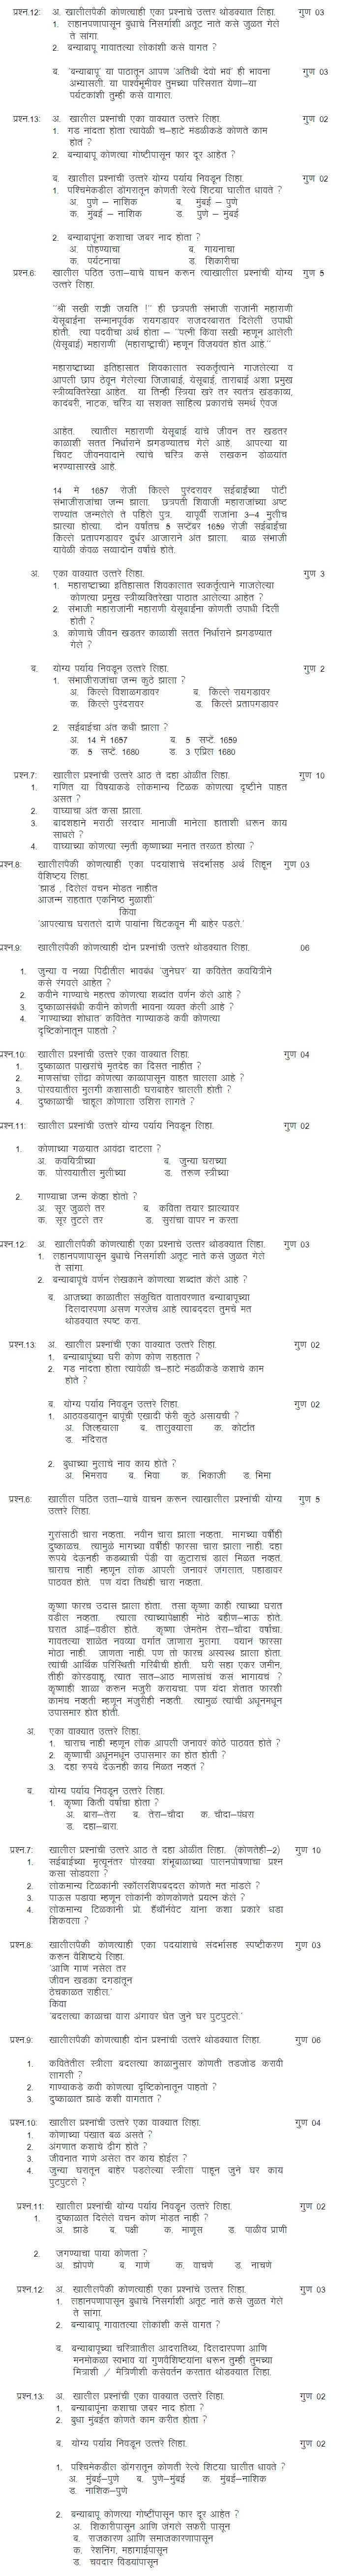 CBSE Class 9 Question Bank - Marathi